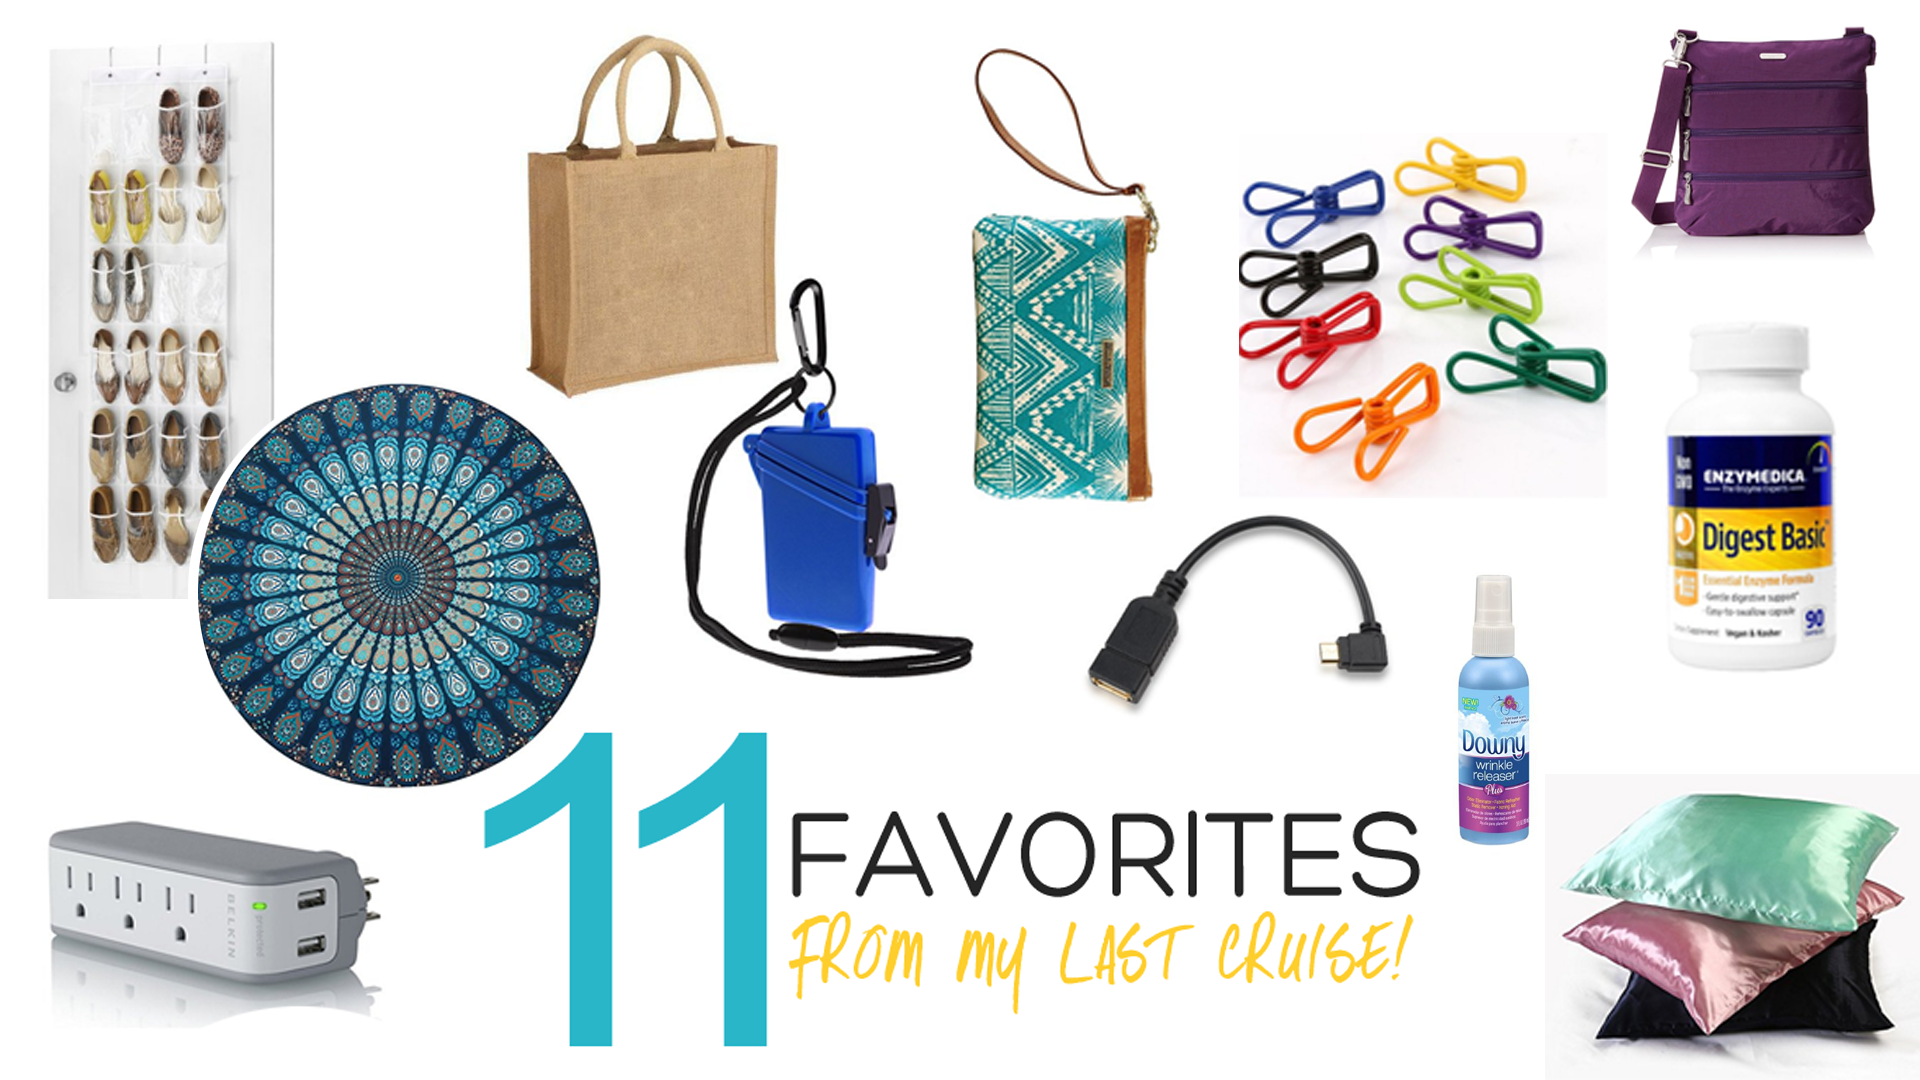 11 Favorite Items From My Last Cruise